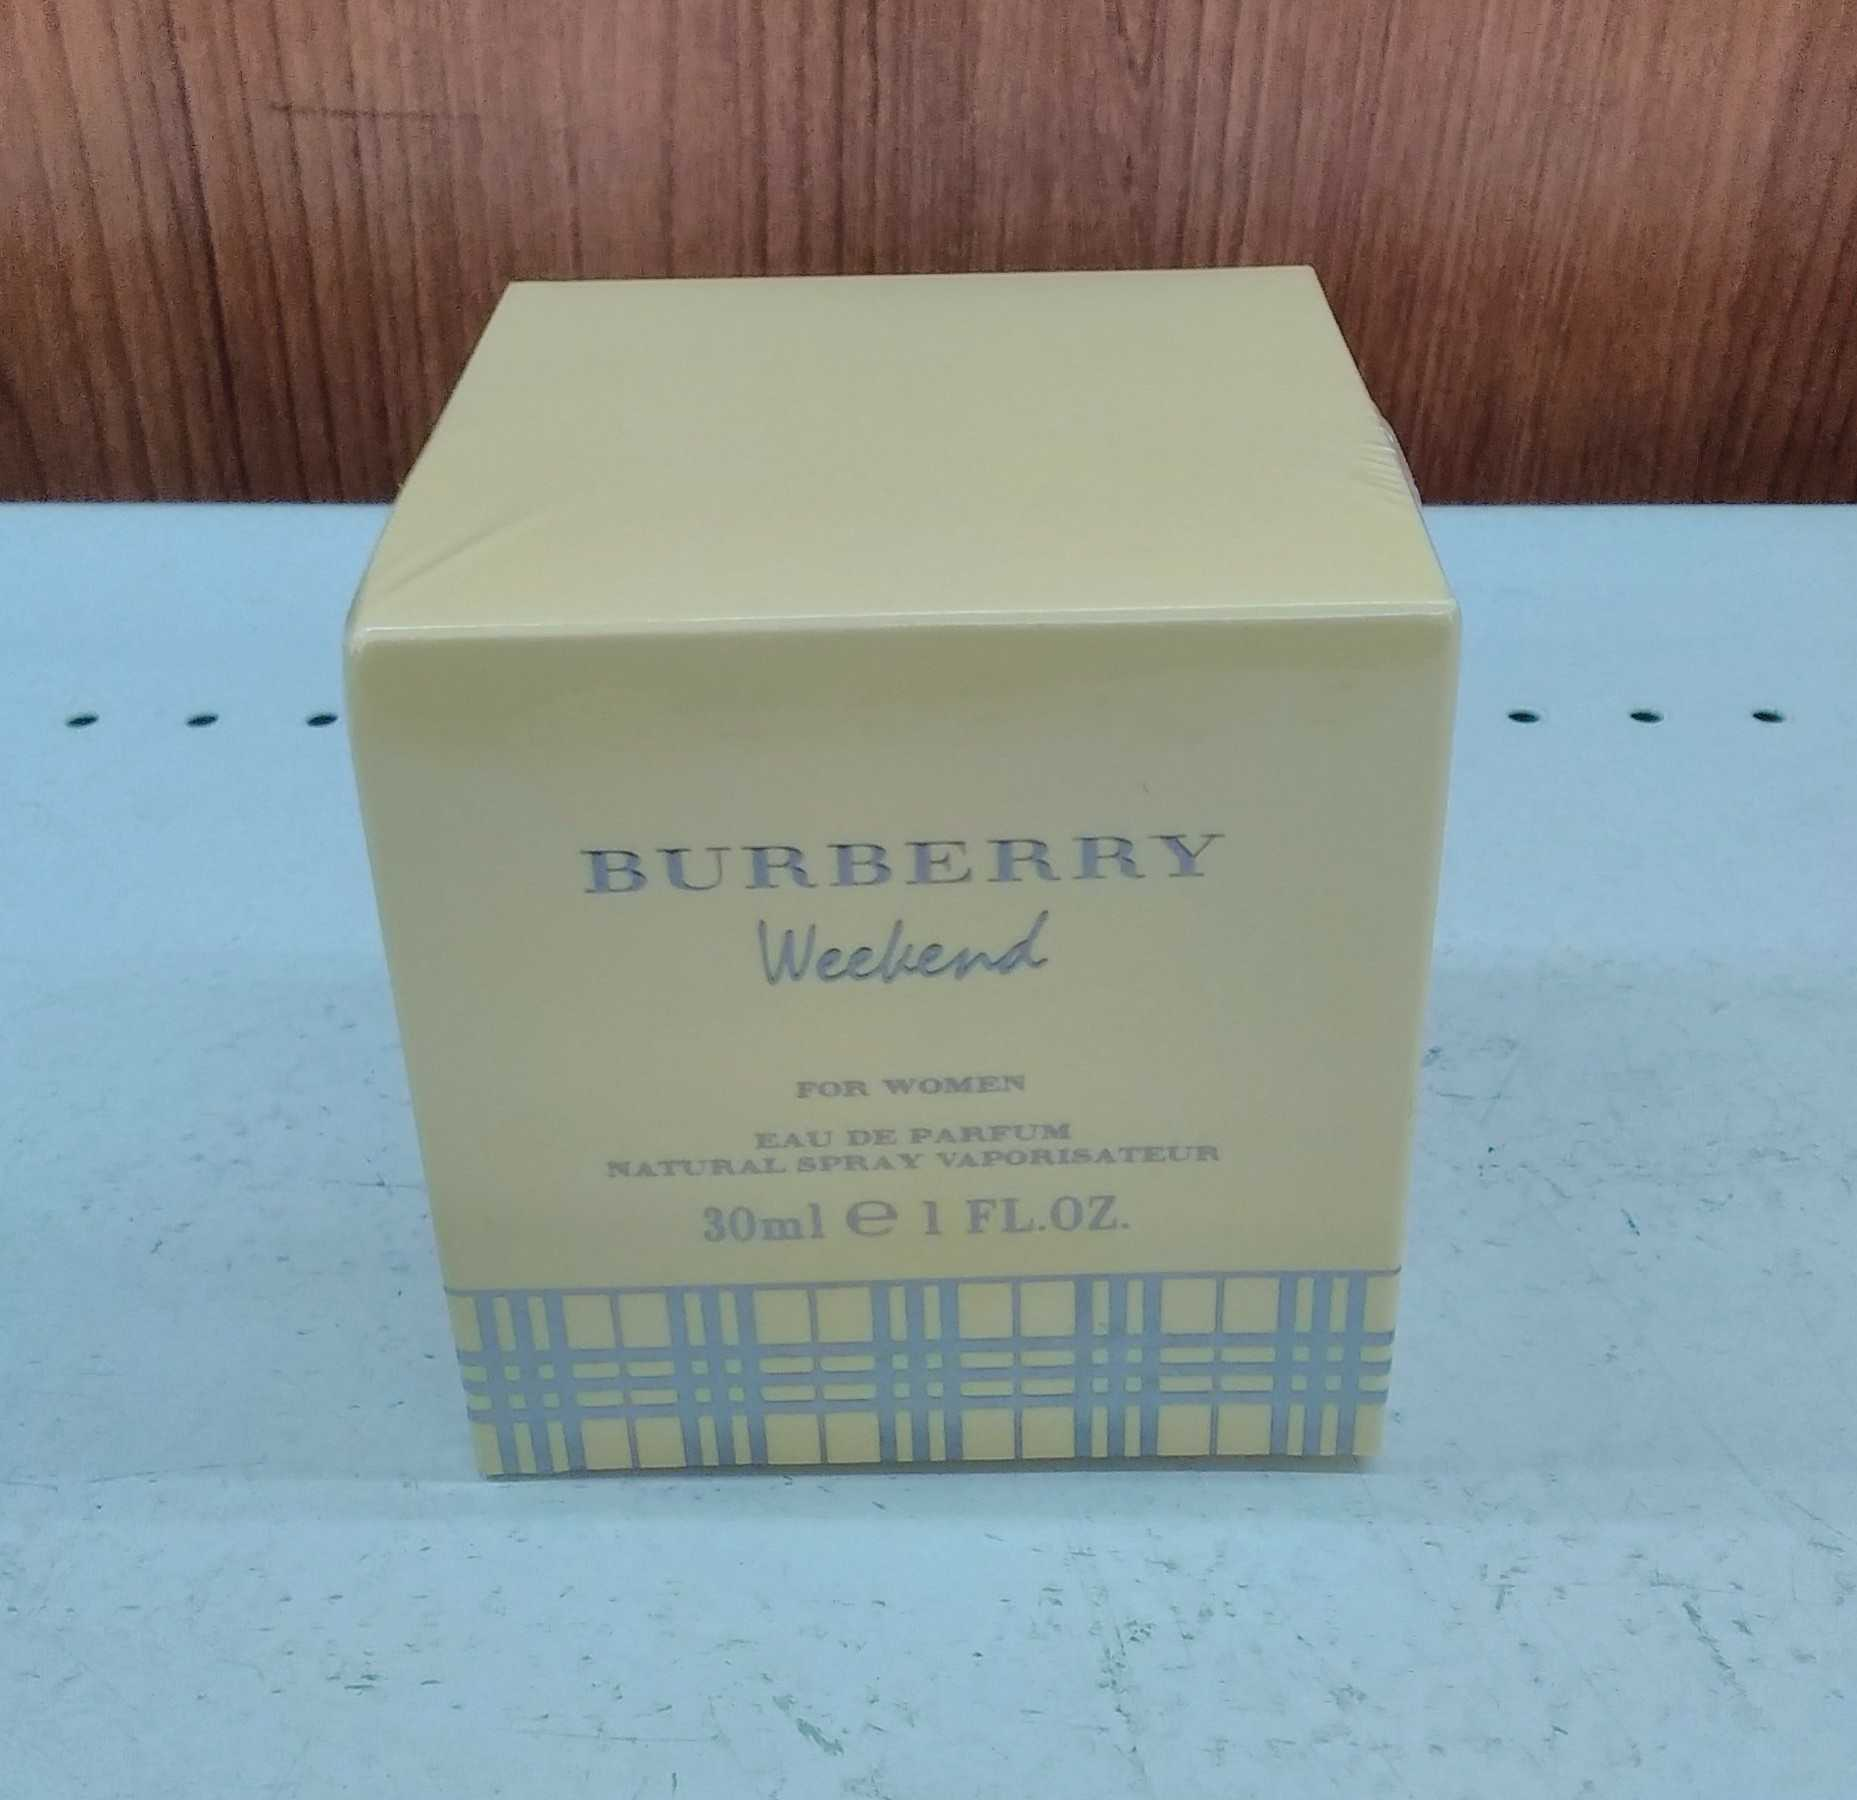 WEEKEND FOR WOMEN|BURBERRY